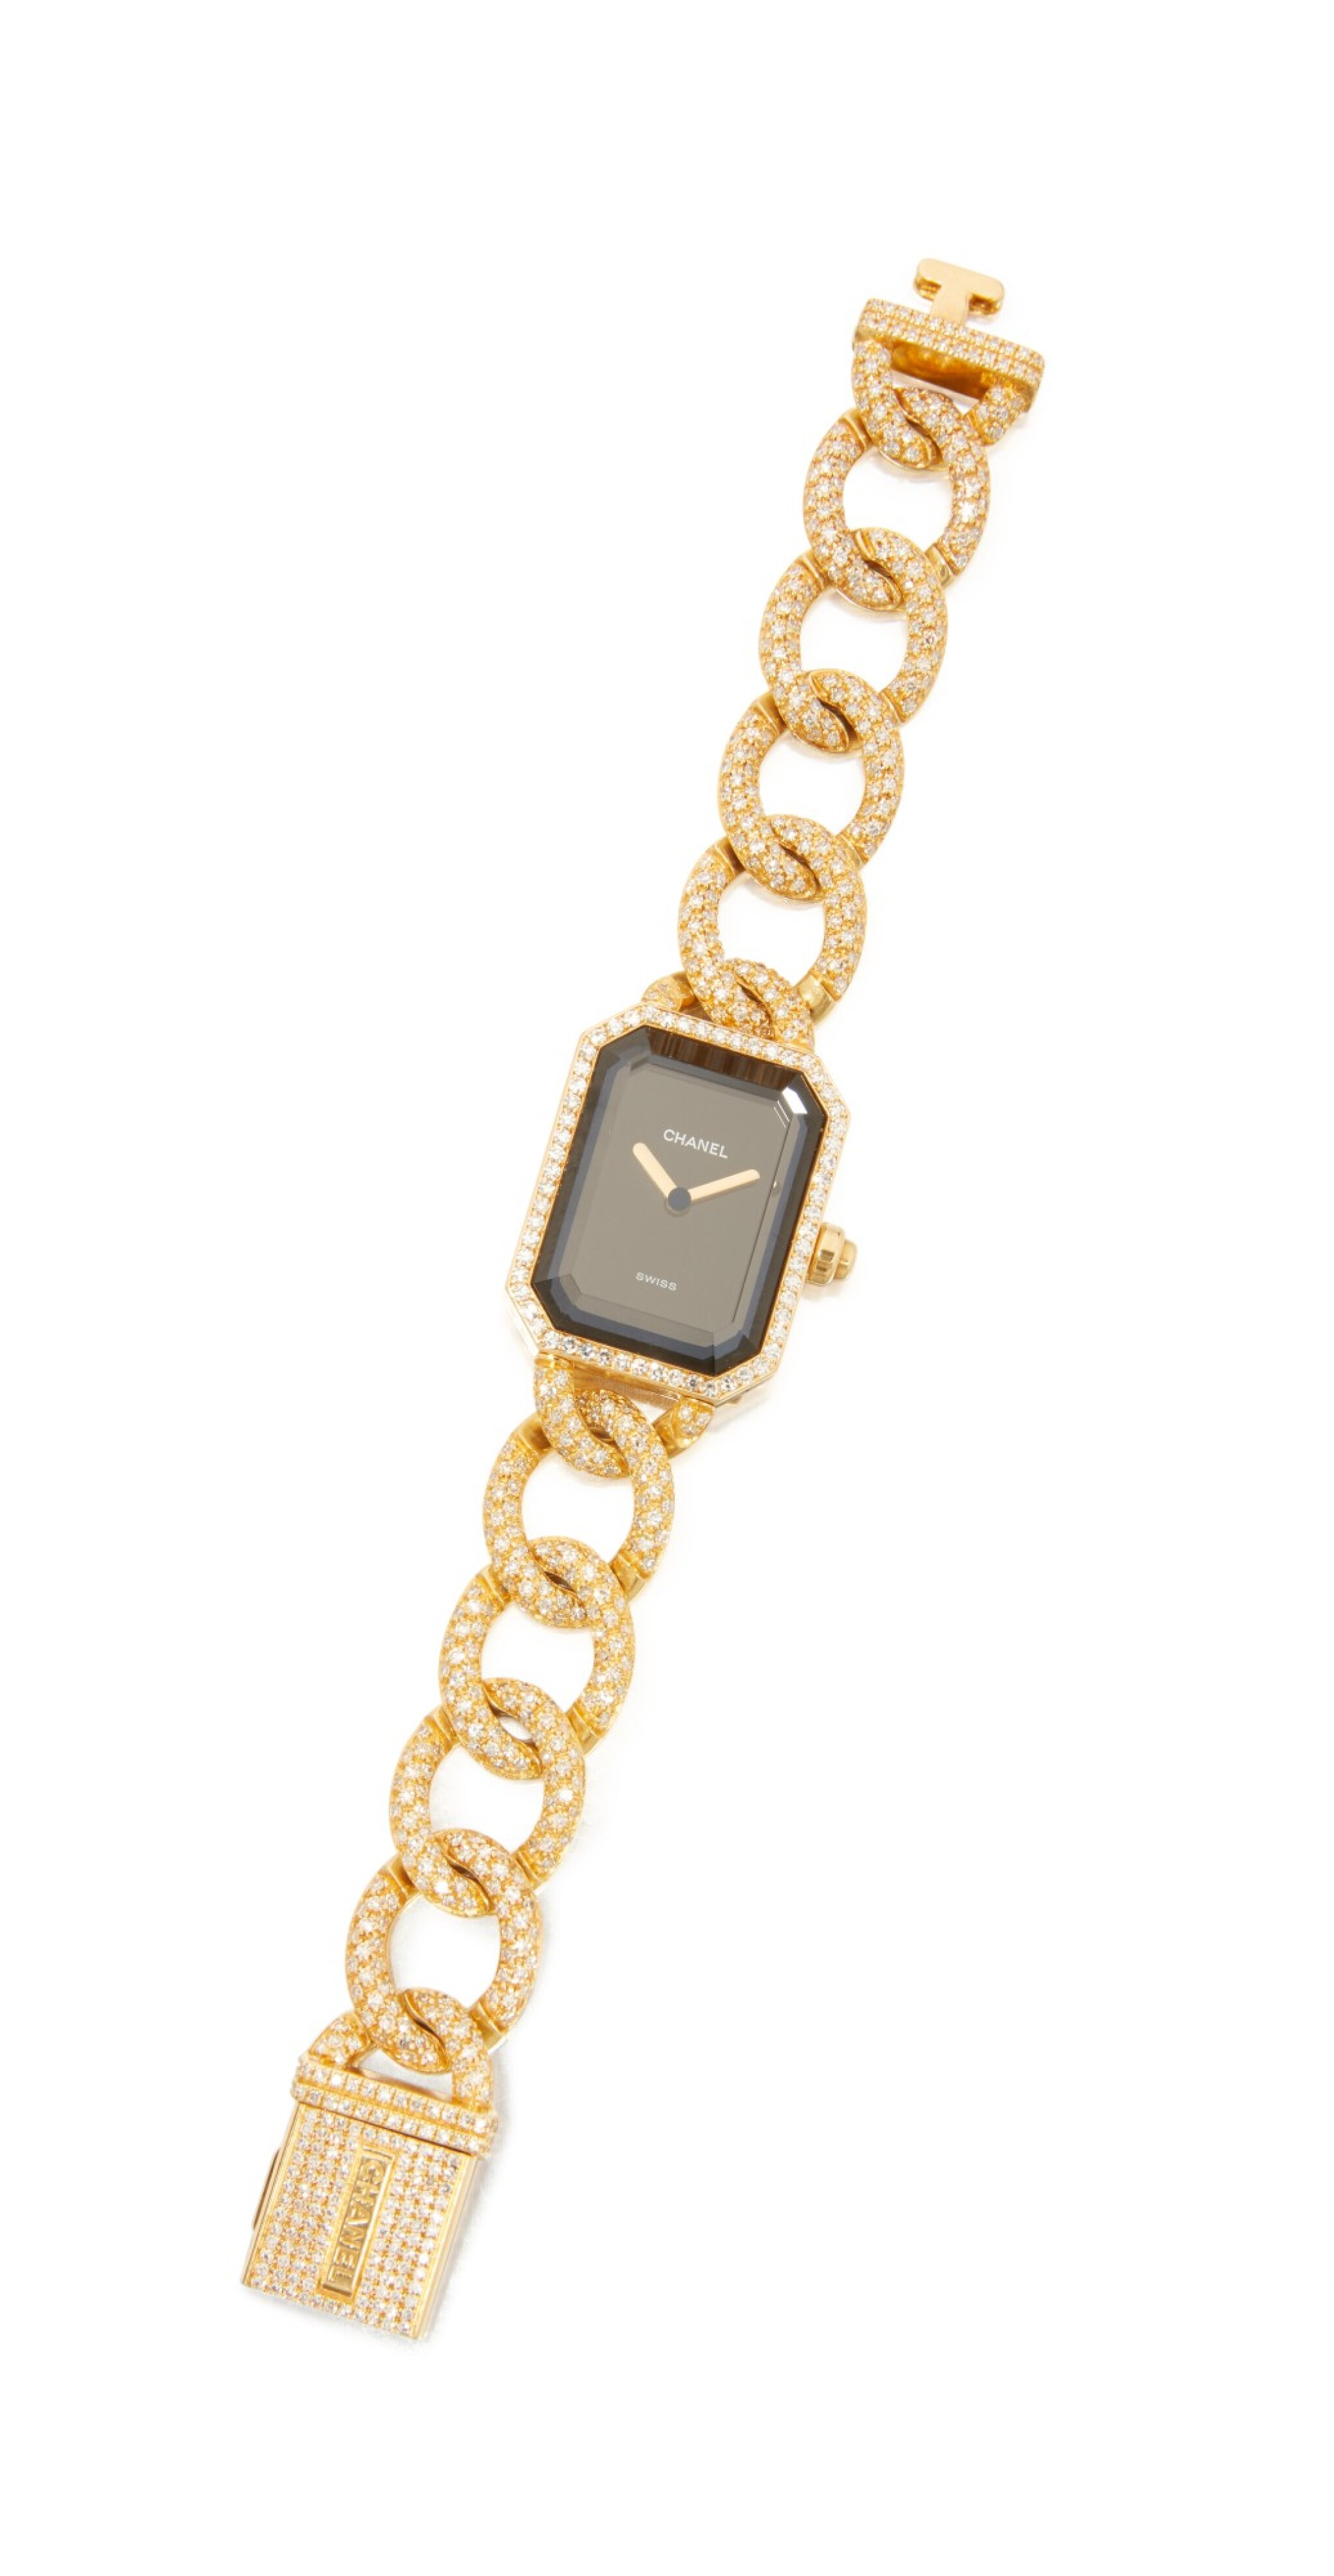 View full screen - View 1 of Lot 24. GOLD AND DIAMOND 'PREMIÈRE' WRISTWATCH, CHANEL.